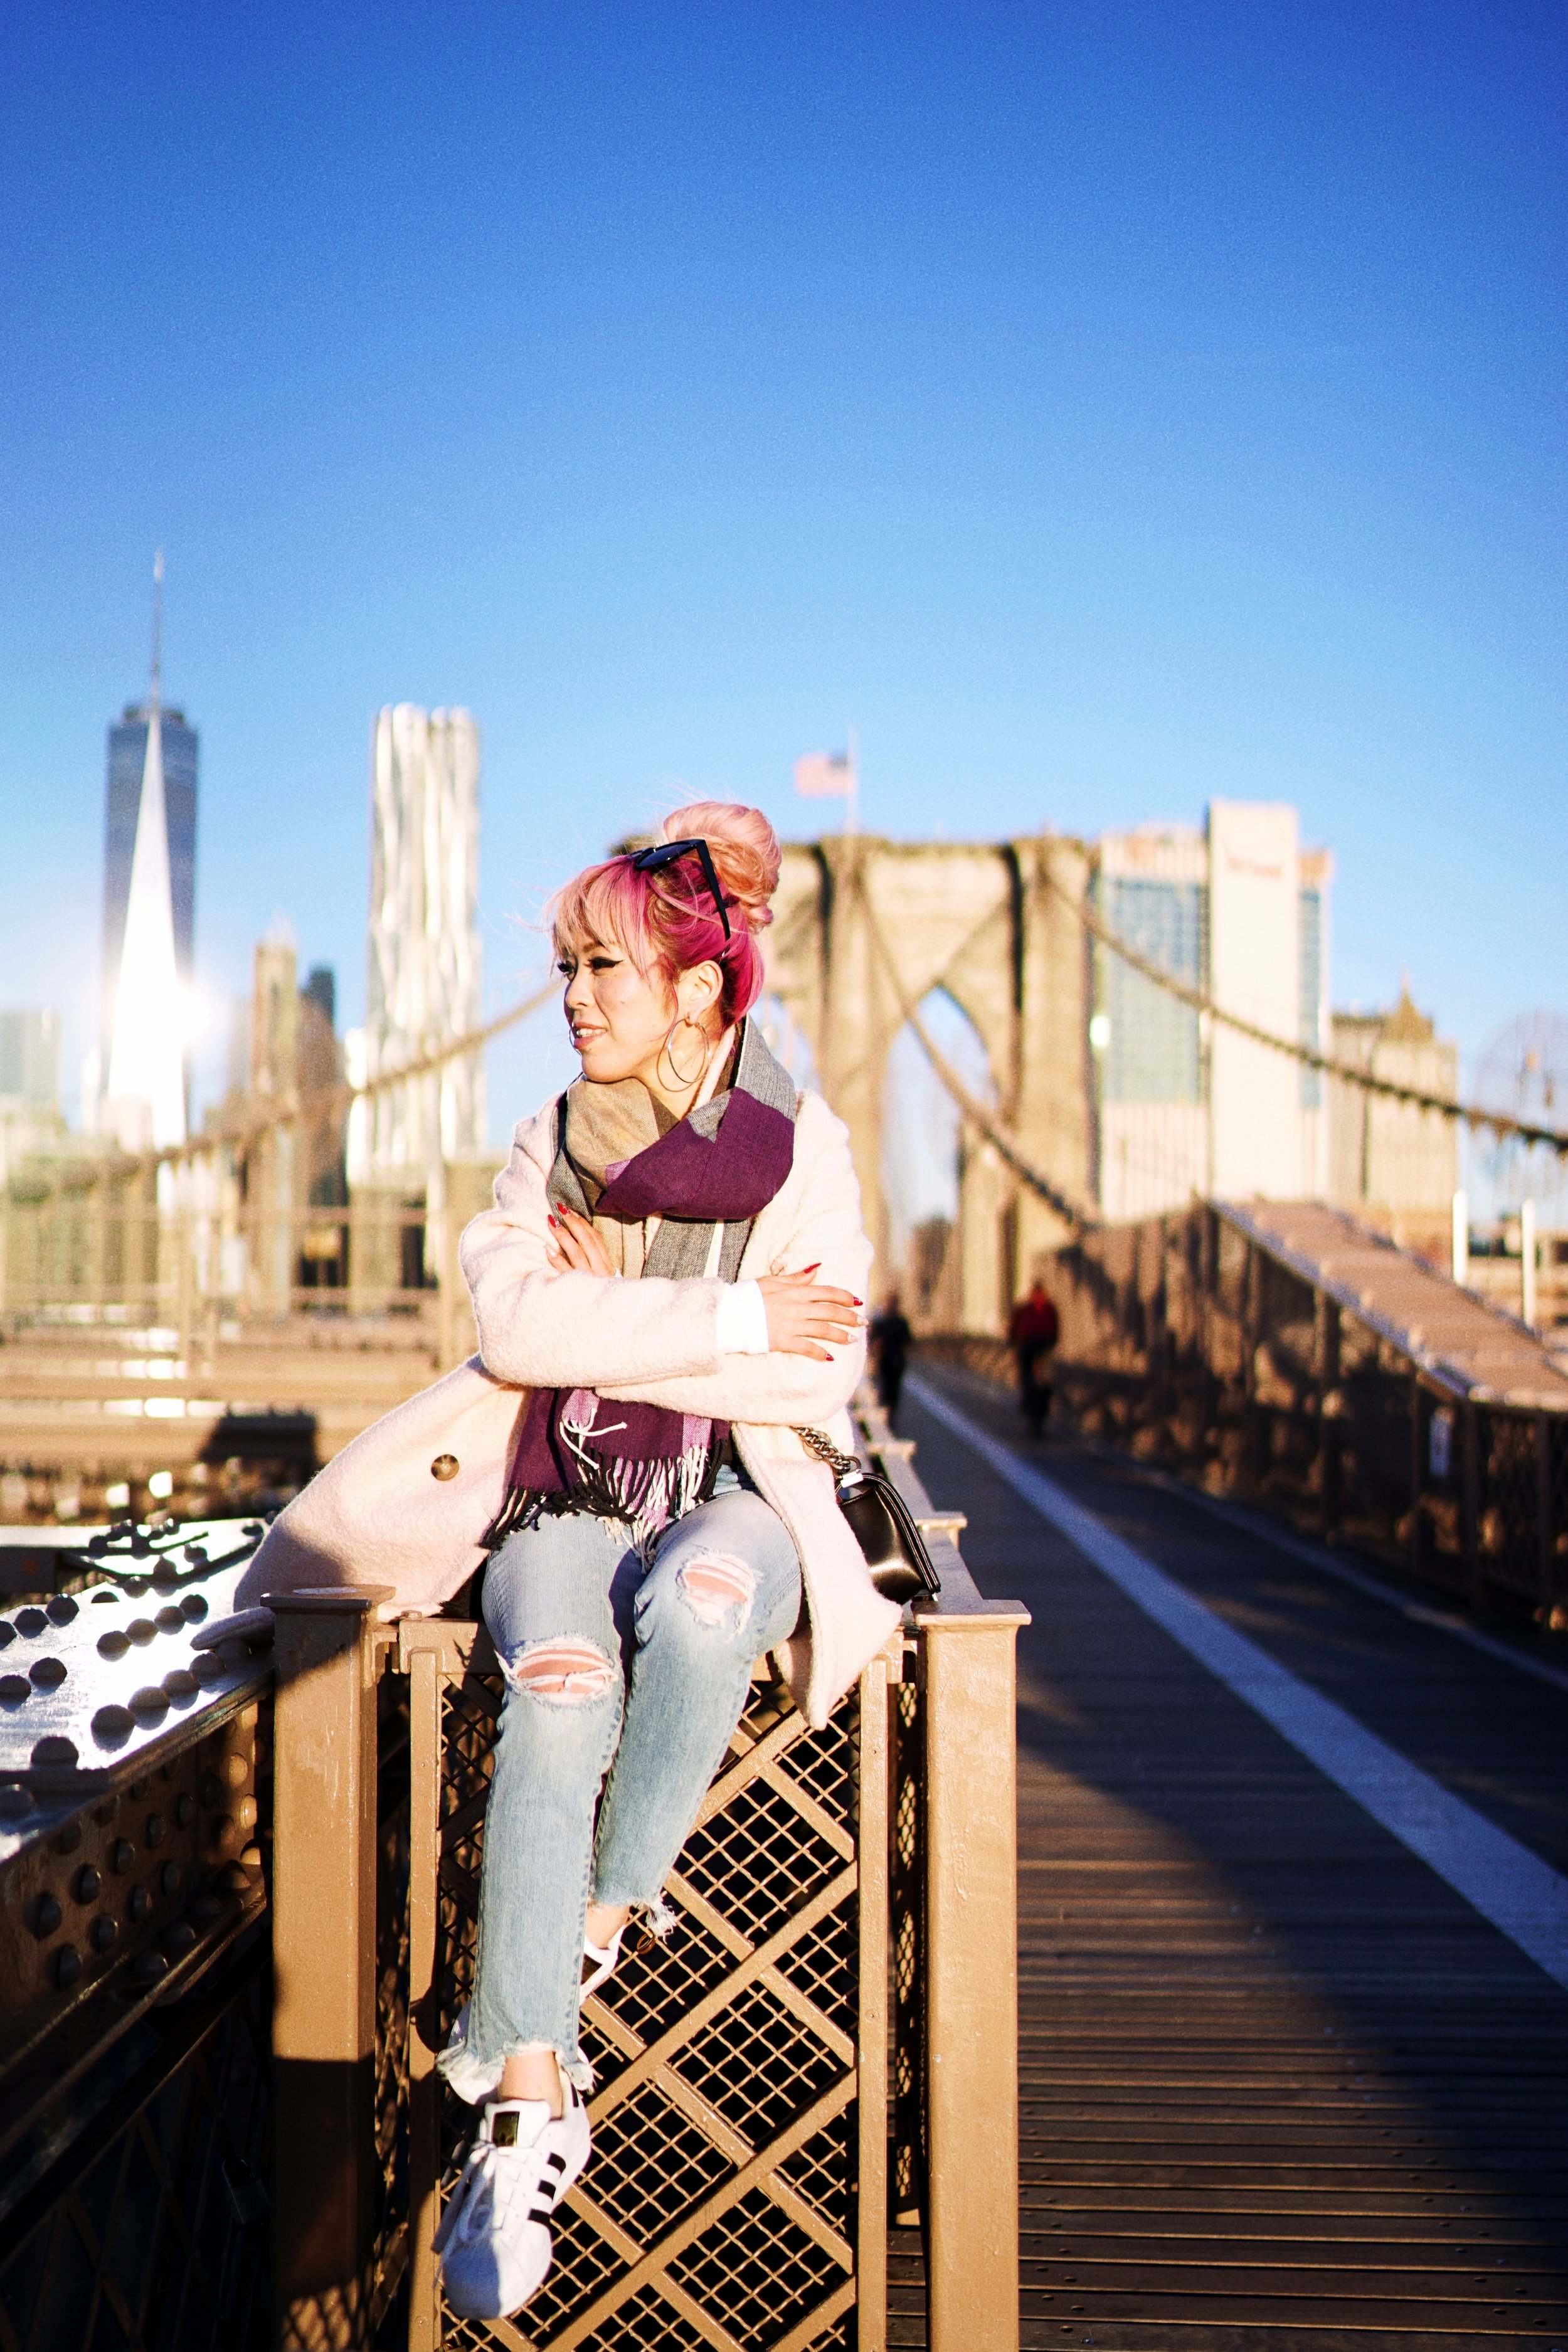 GAP Scarf-Zara pink coat-MOUSSY- frayed hem jeans- CHANEL Lambskin Quilted Medium Boy Flap Black-Adidas Superstar Shoes-Urban Outfitters Sunglasses-Aika's Love Closet-Sealtle fashion style blogger from japan-pink hair-brooklyn bridge-new york-city 16